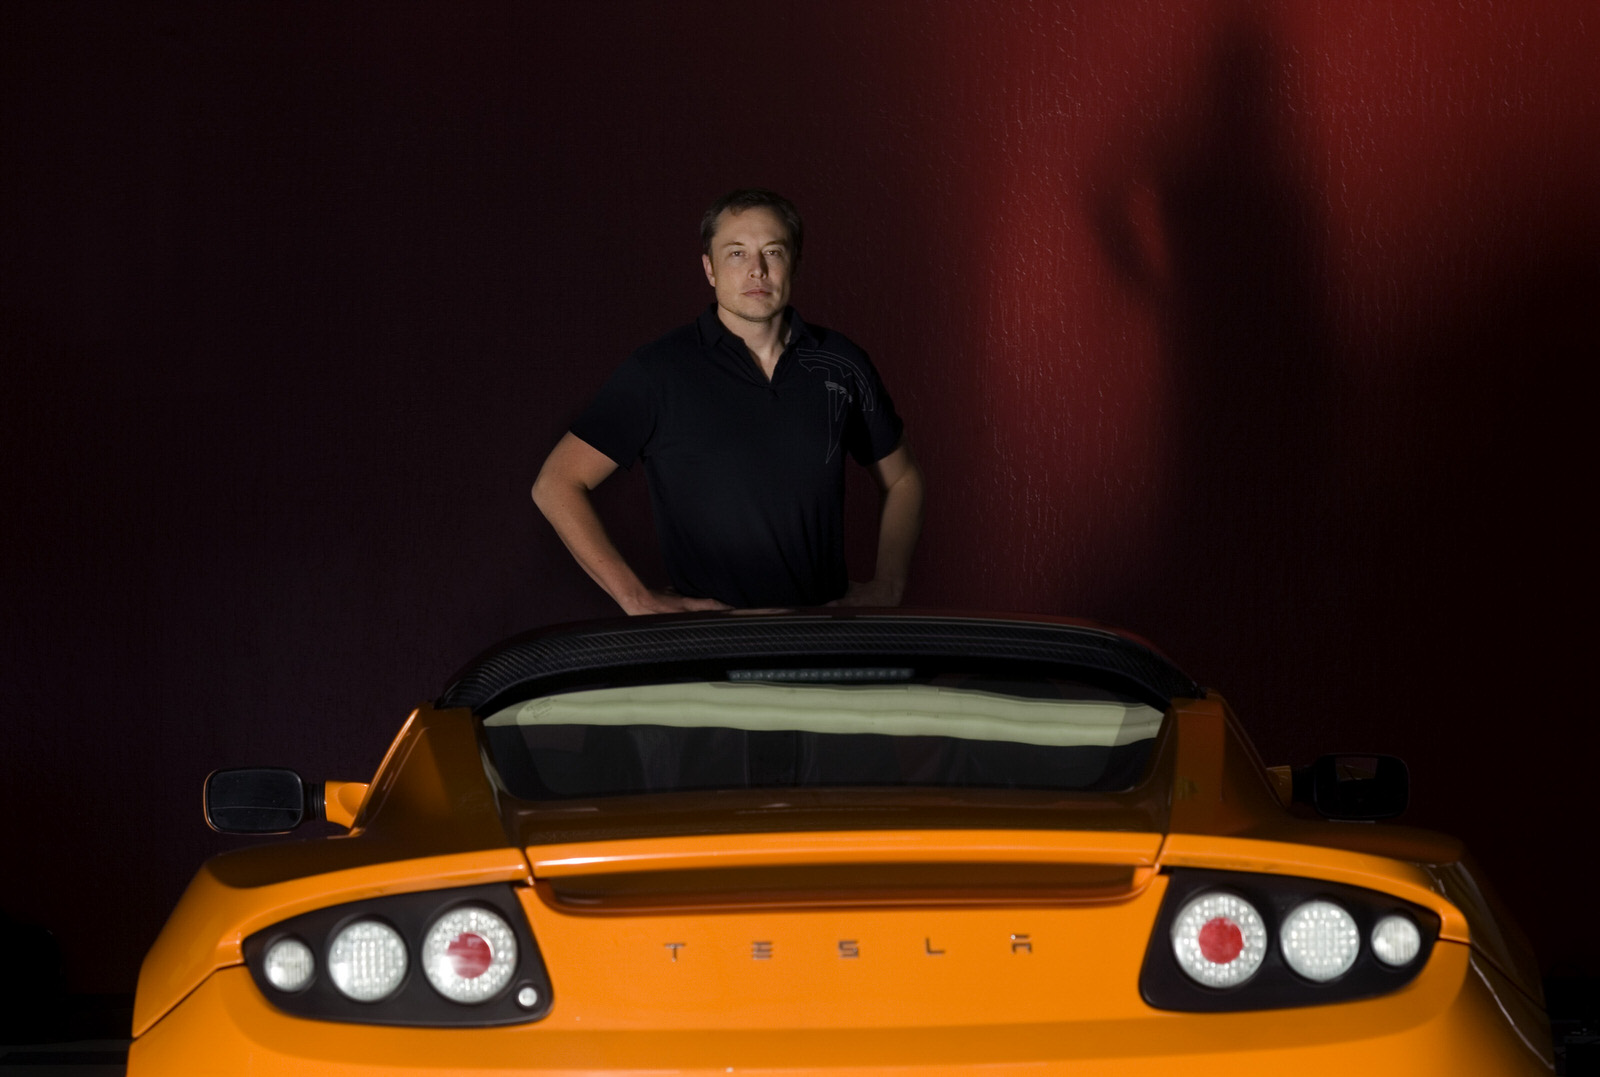 Musk gets the first Roadster